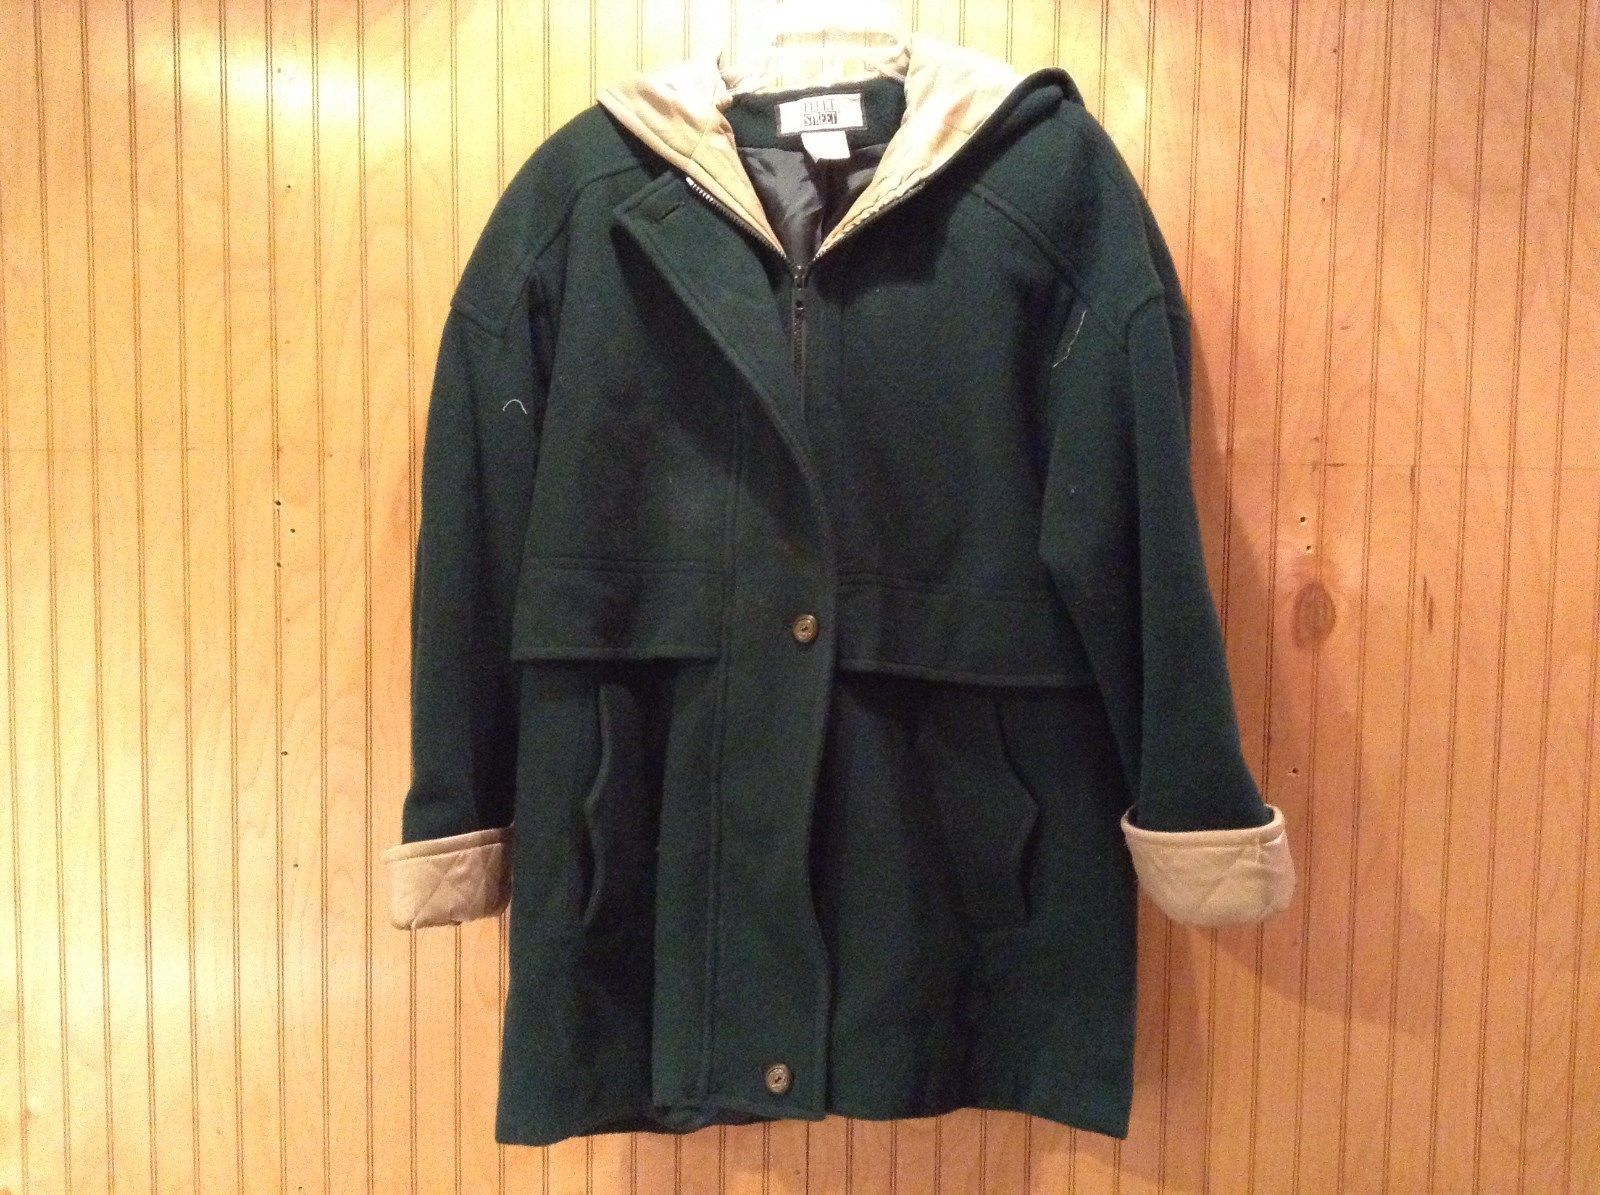 Fleet Street Green Hooded Wool Jacket Tan Brown Lining 2 Front Pockets Size 12